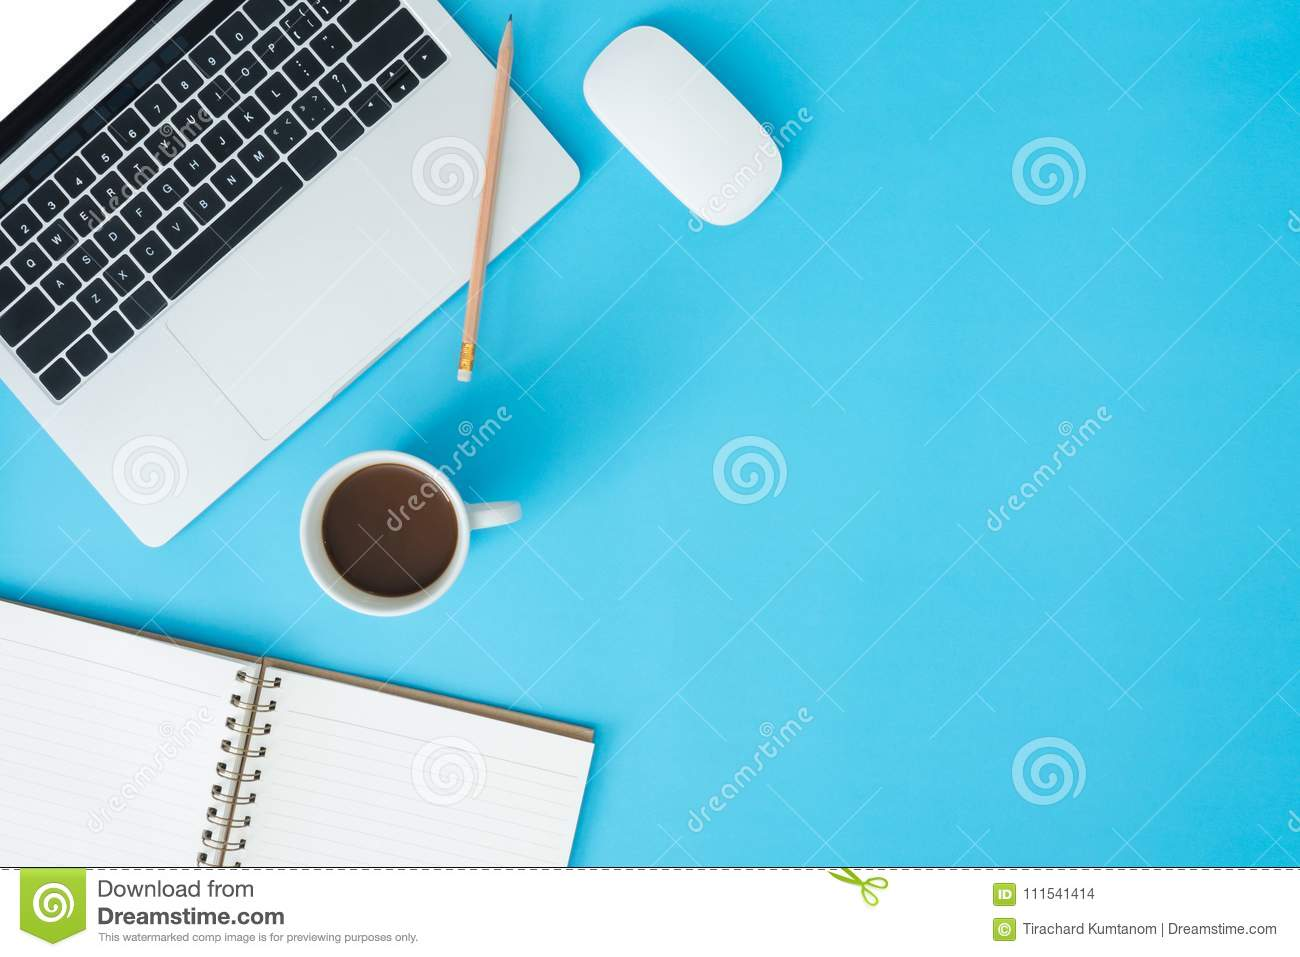 Top view office desk with laptop, notebooks and coffee cup on blue color background. Top view with copy space, flat lay photograph